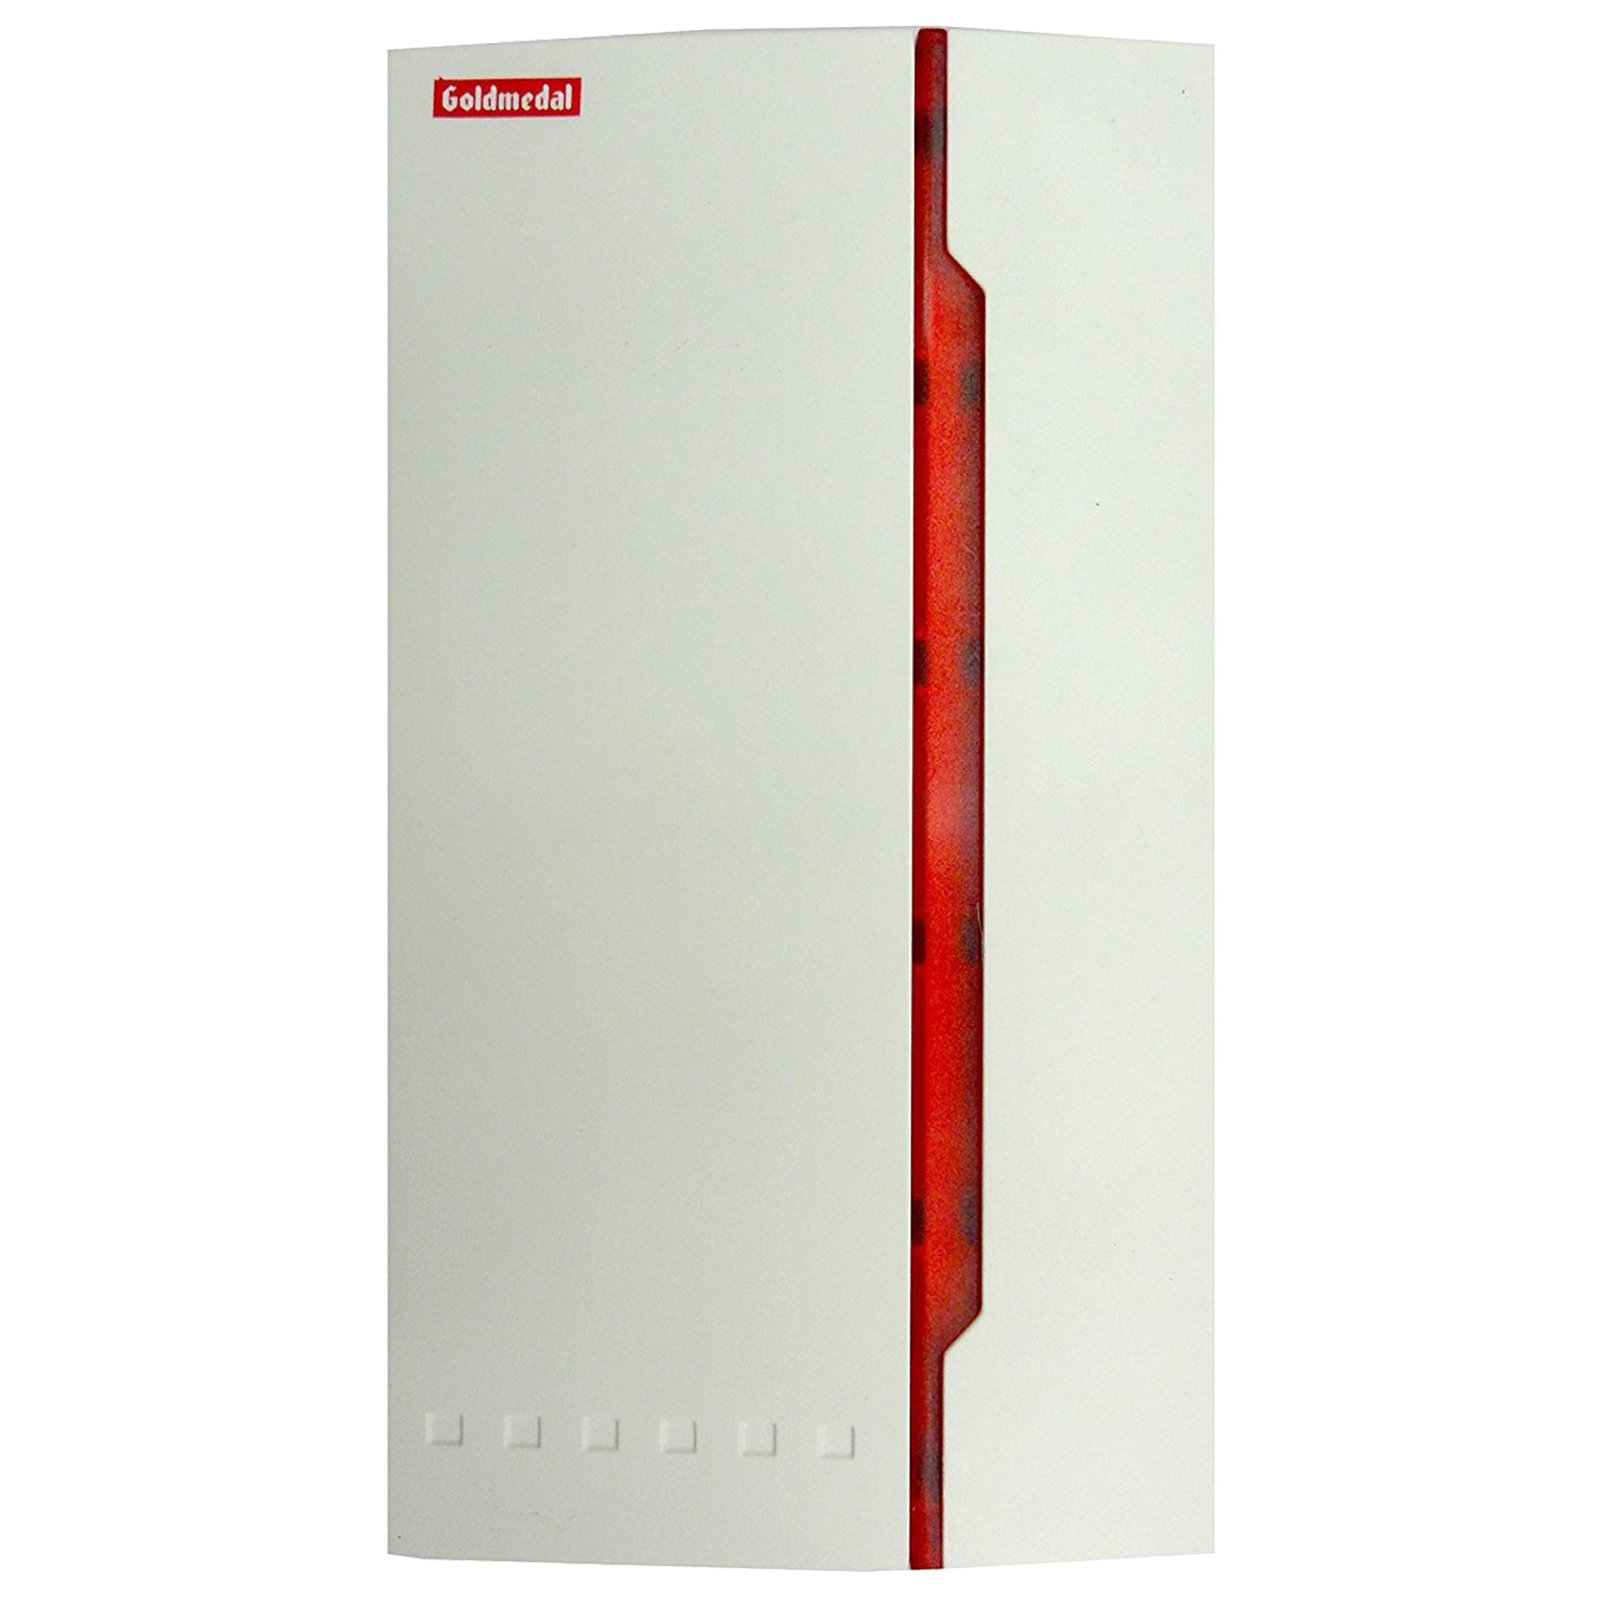 Goldmedal Belaton Door Bell (Stereophonic, 203051, White/Red)_1